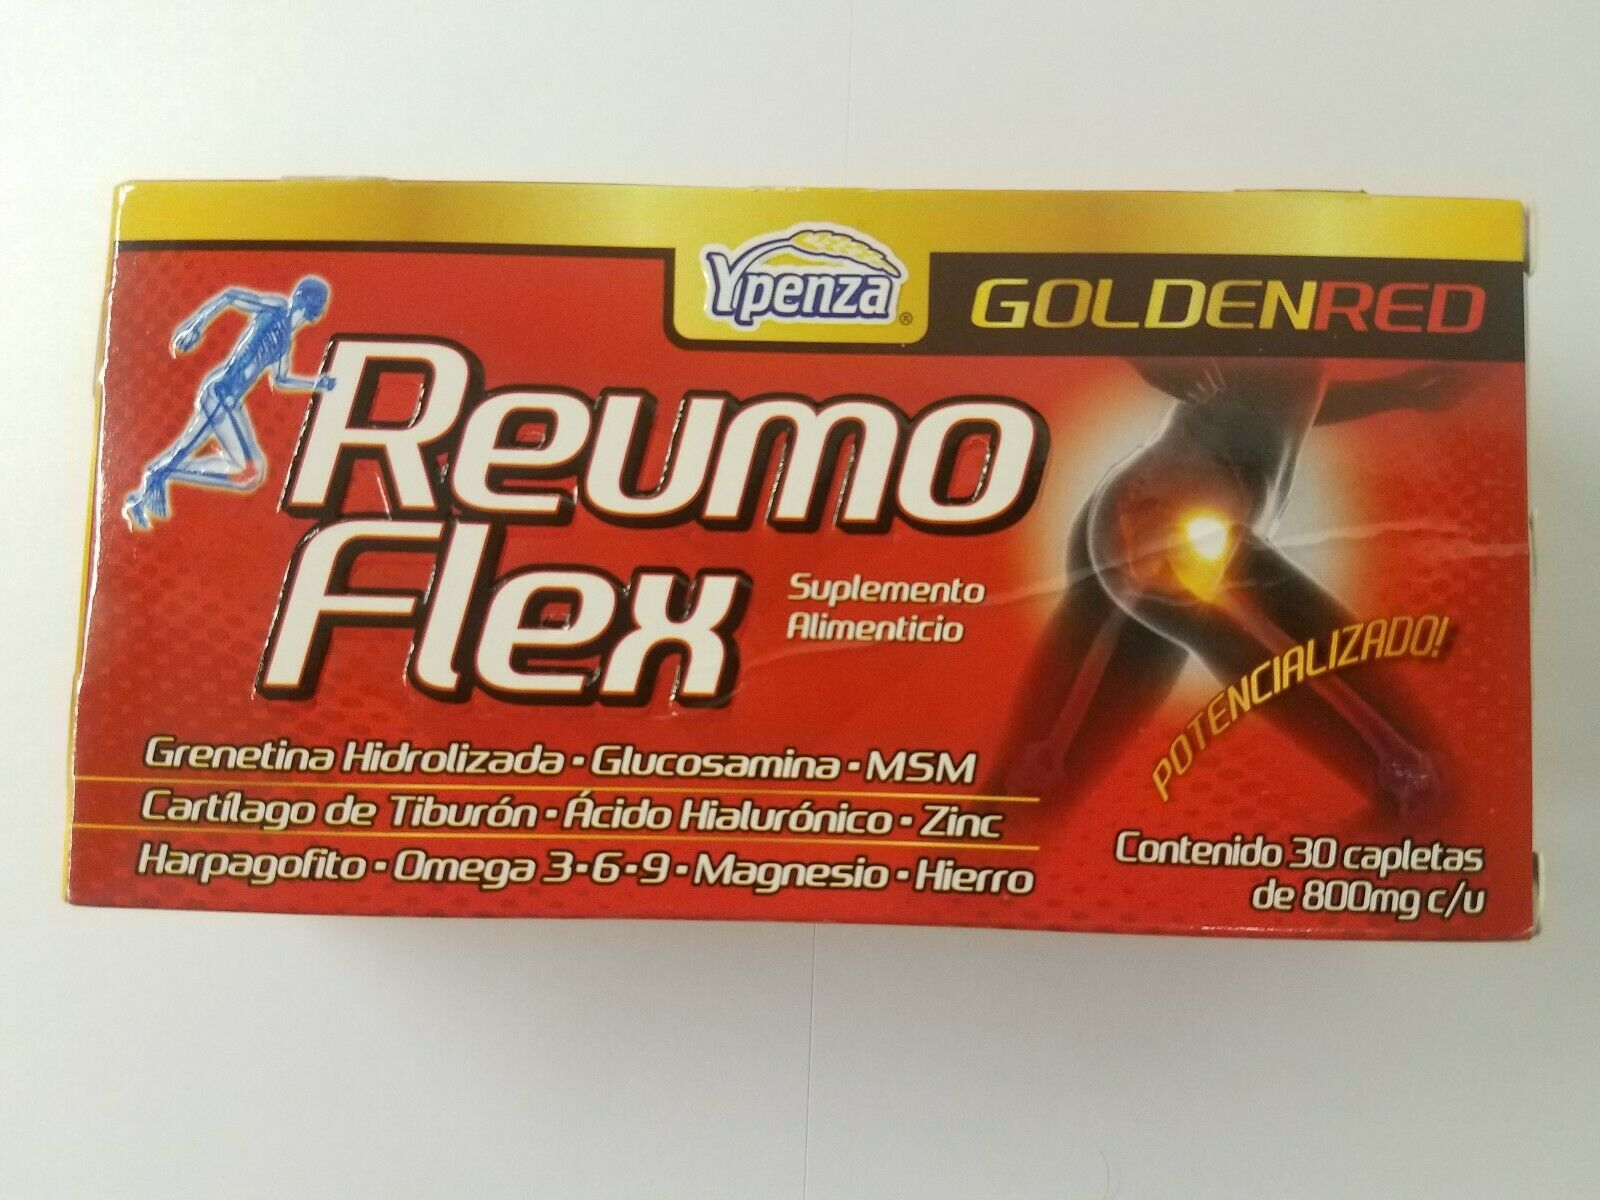 Reumo Flex GOLDEN RED Relieves Joints Artritis and Ciatica pain Articulaciones 5